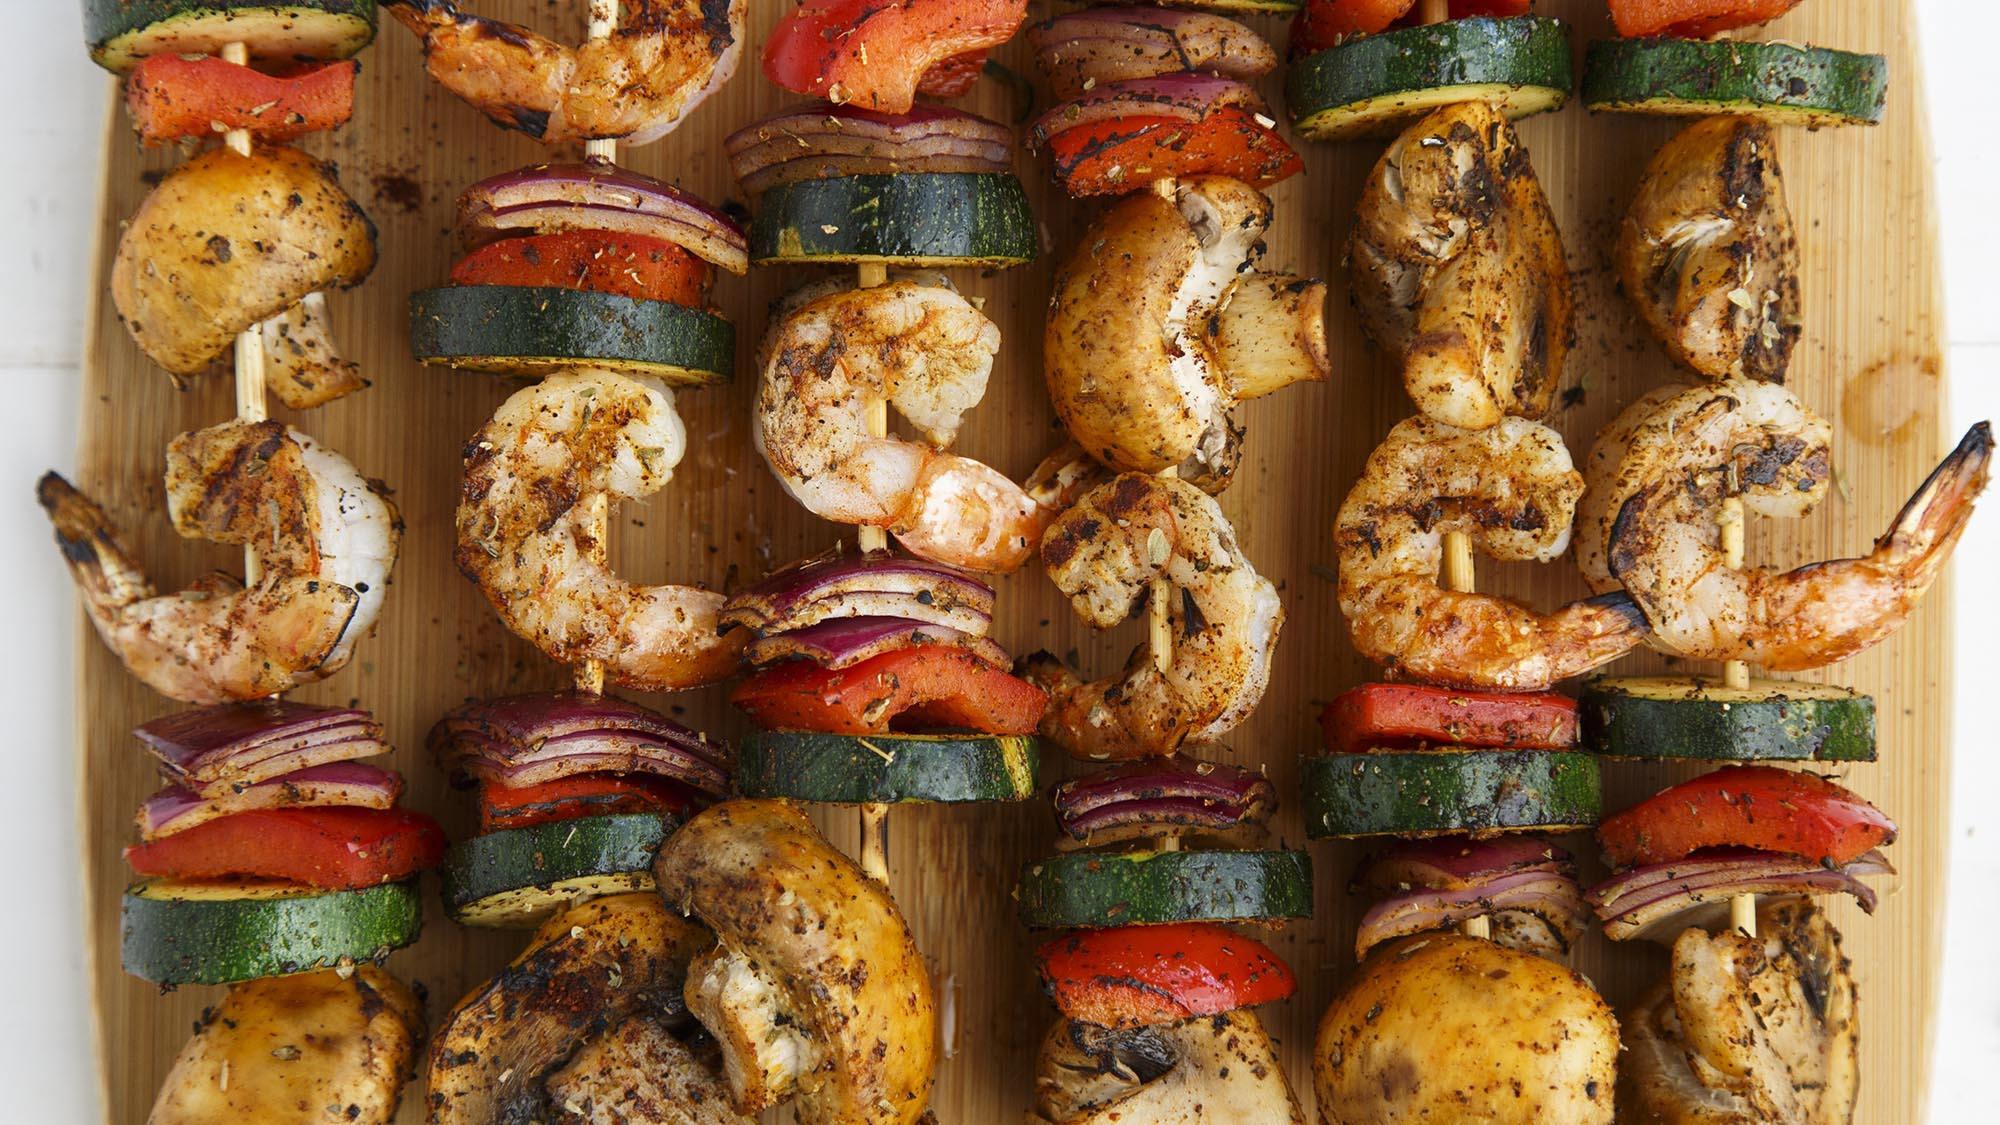 MEXICANA SHRIMP AND VEGETABLE KEBABS